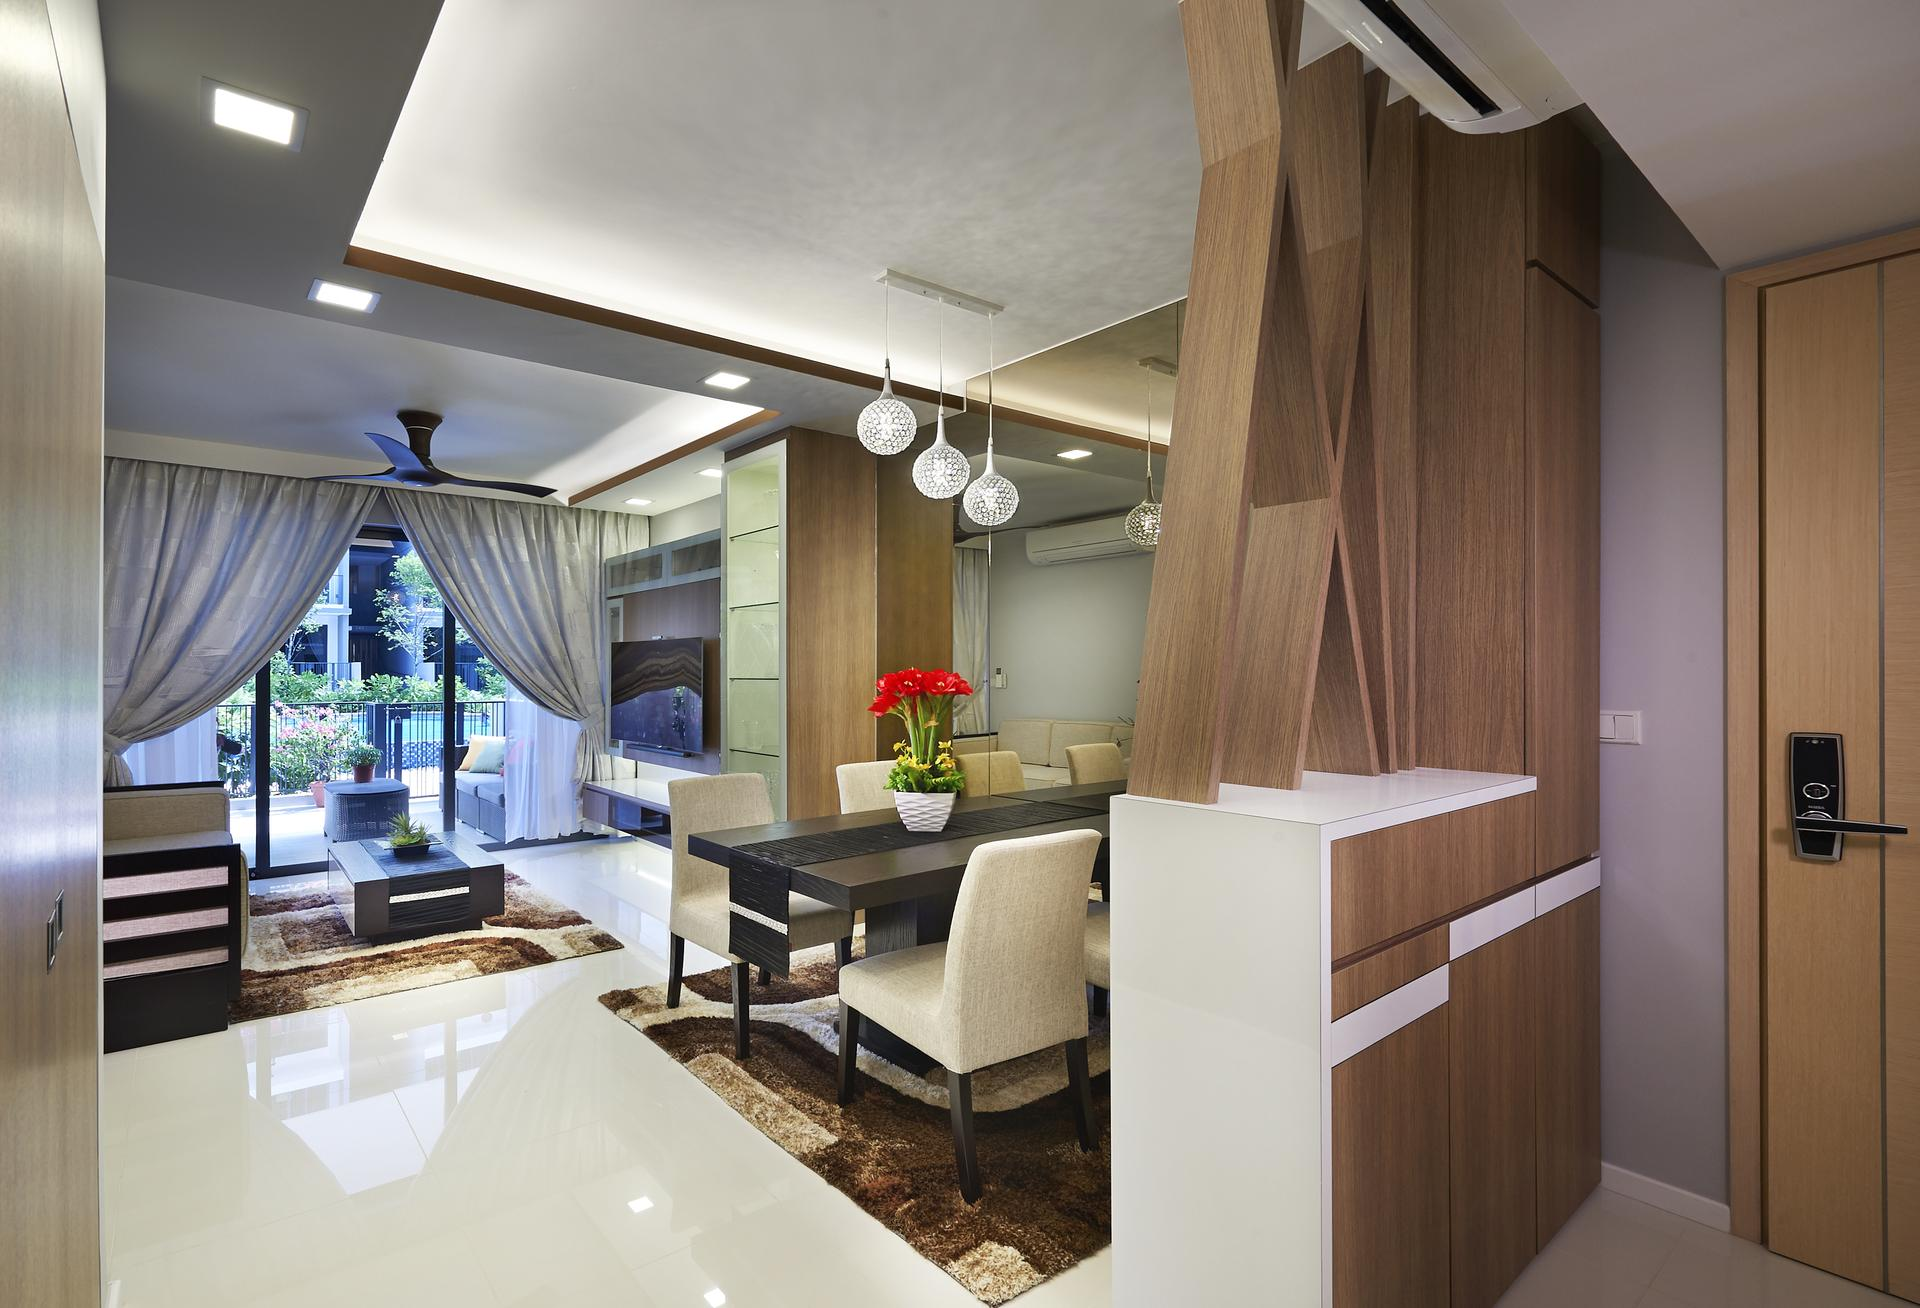 The Rainforest Qanvast Home Design Renovation Remodelling